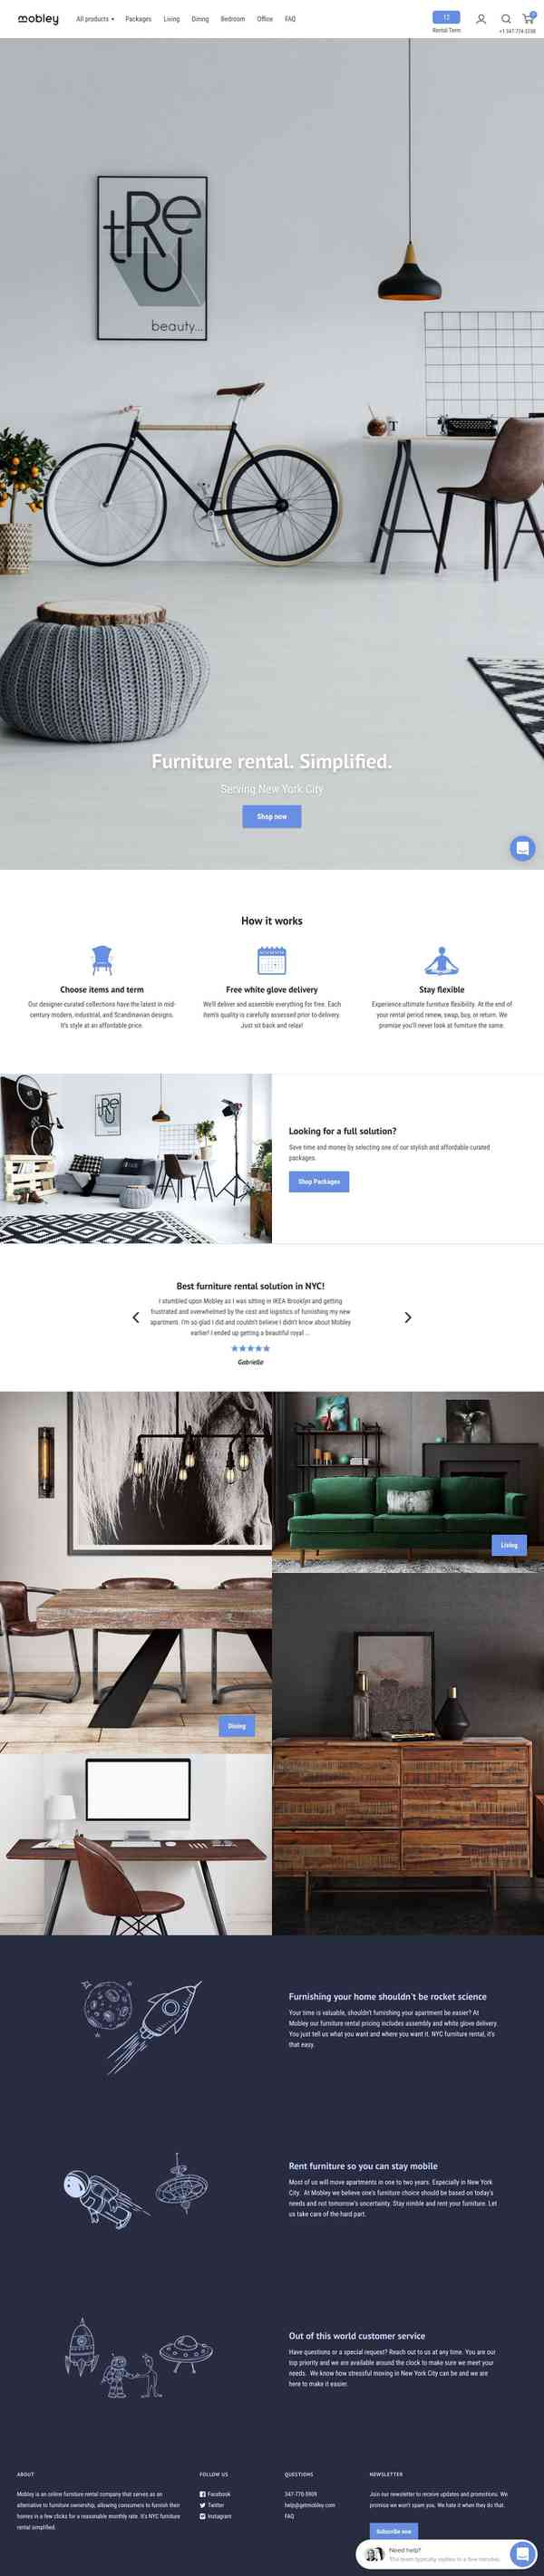 Mobley: NYC Furniture Rental. Simplified.